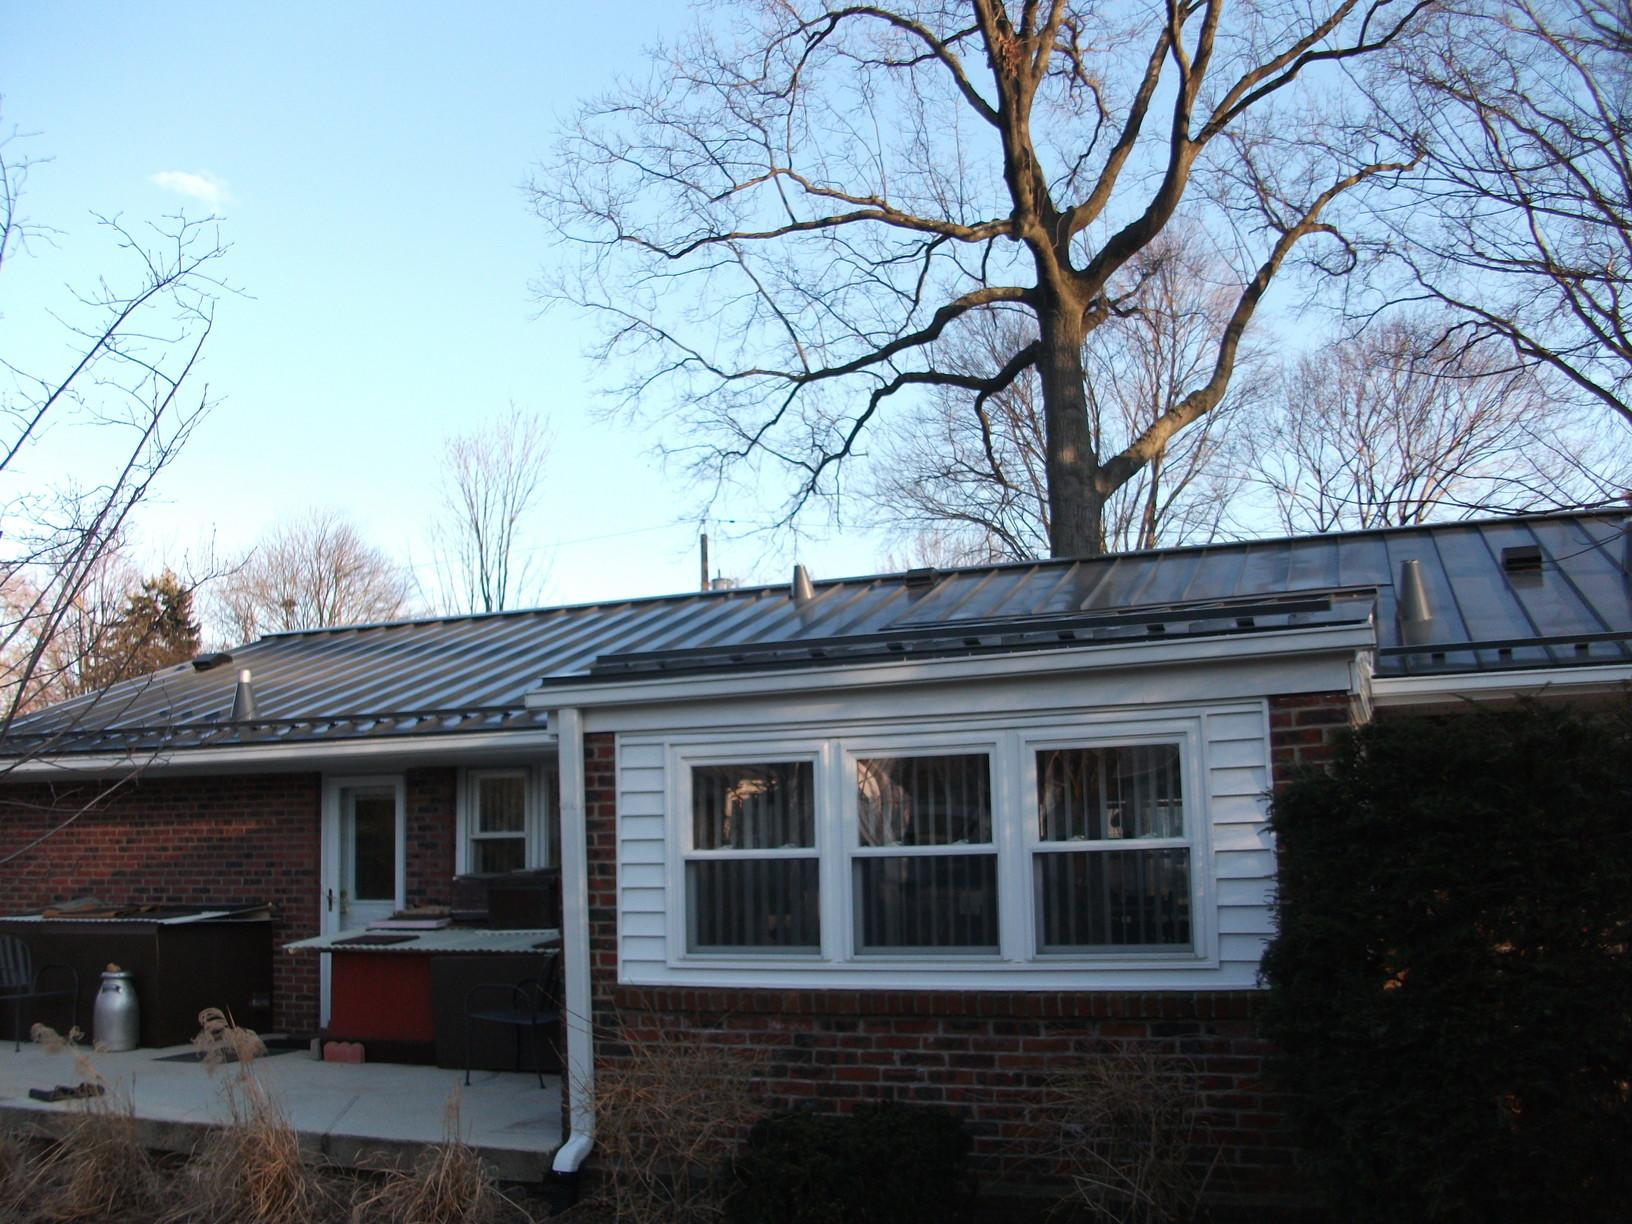 Installing Metal Roof on Home in Mountainside, NJ